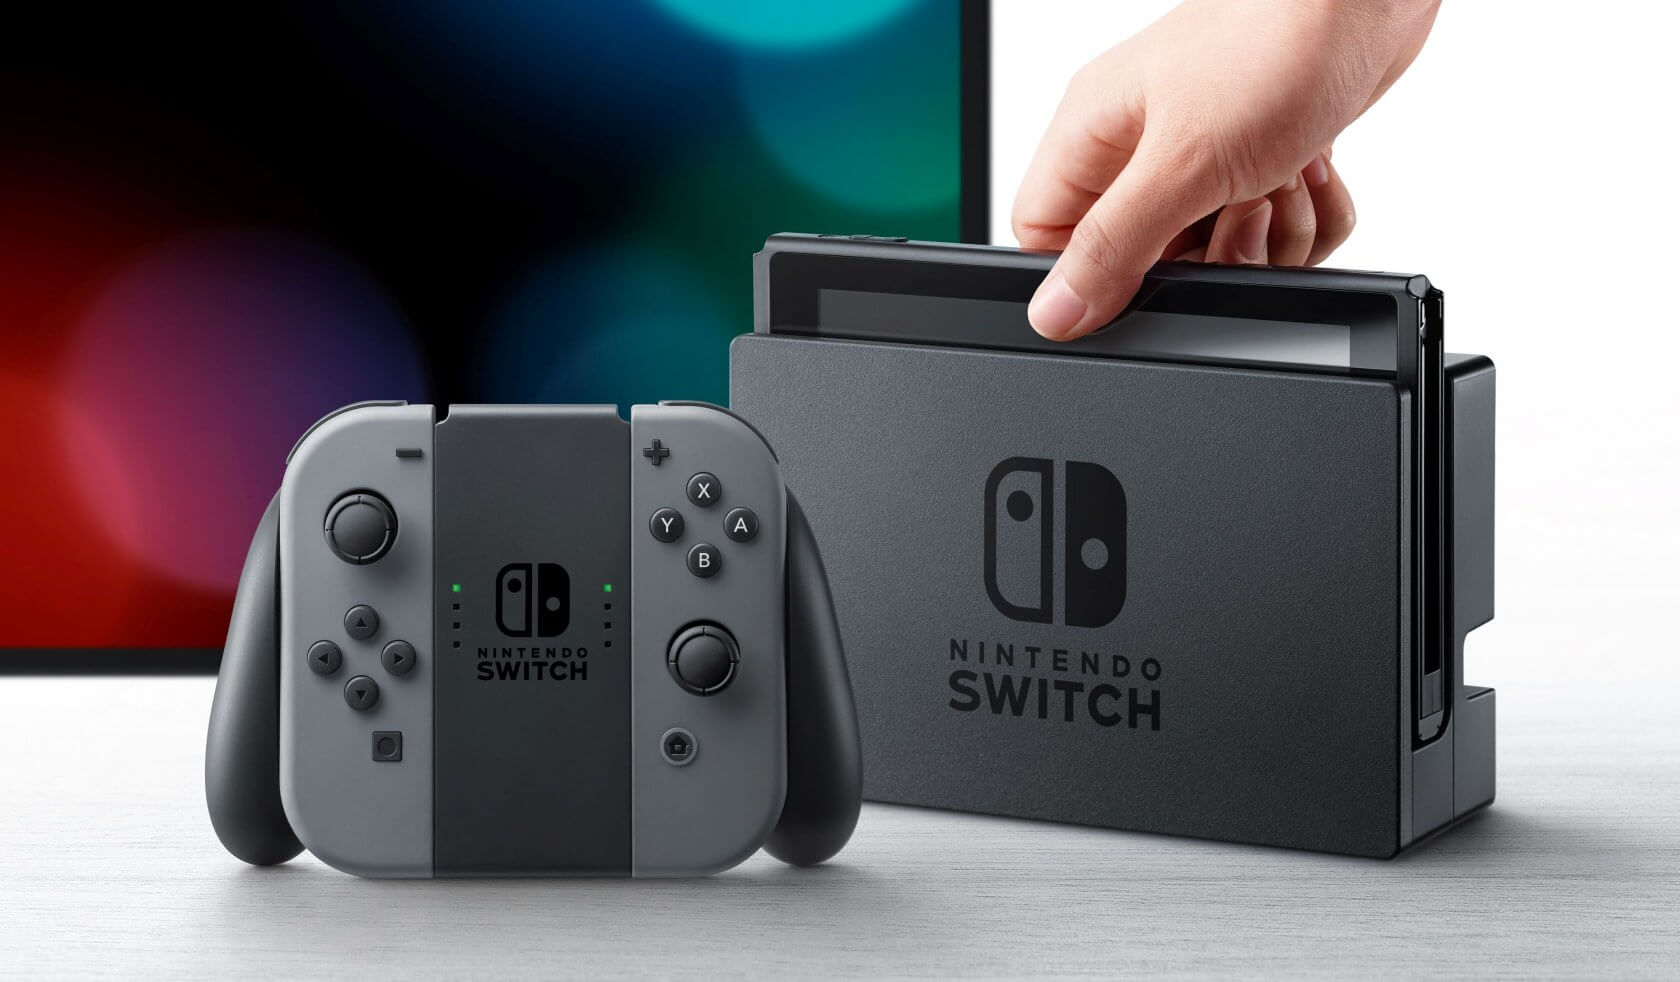 Nintendo is reportedly planning to launch a cheaper, more portable Switch in 2019